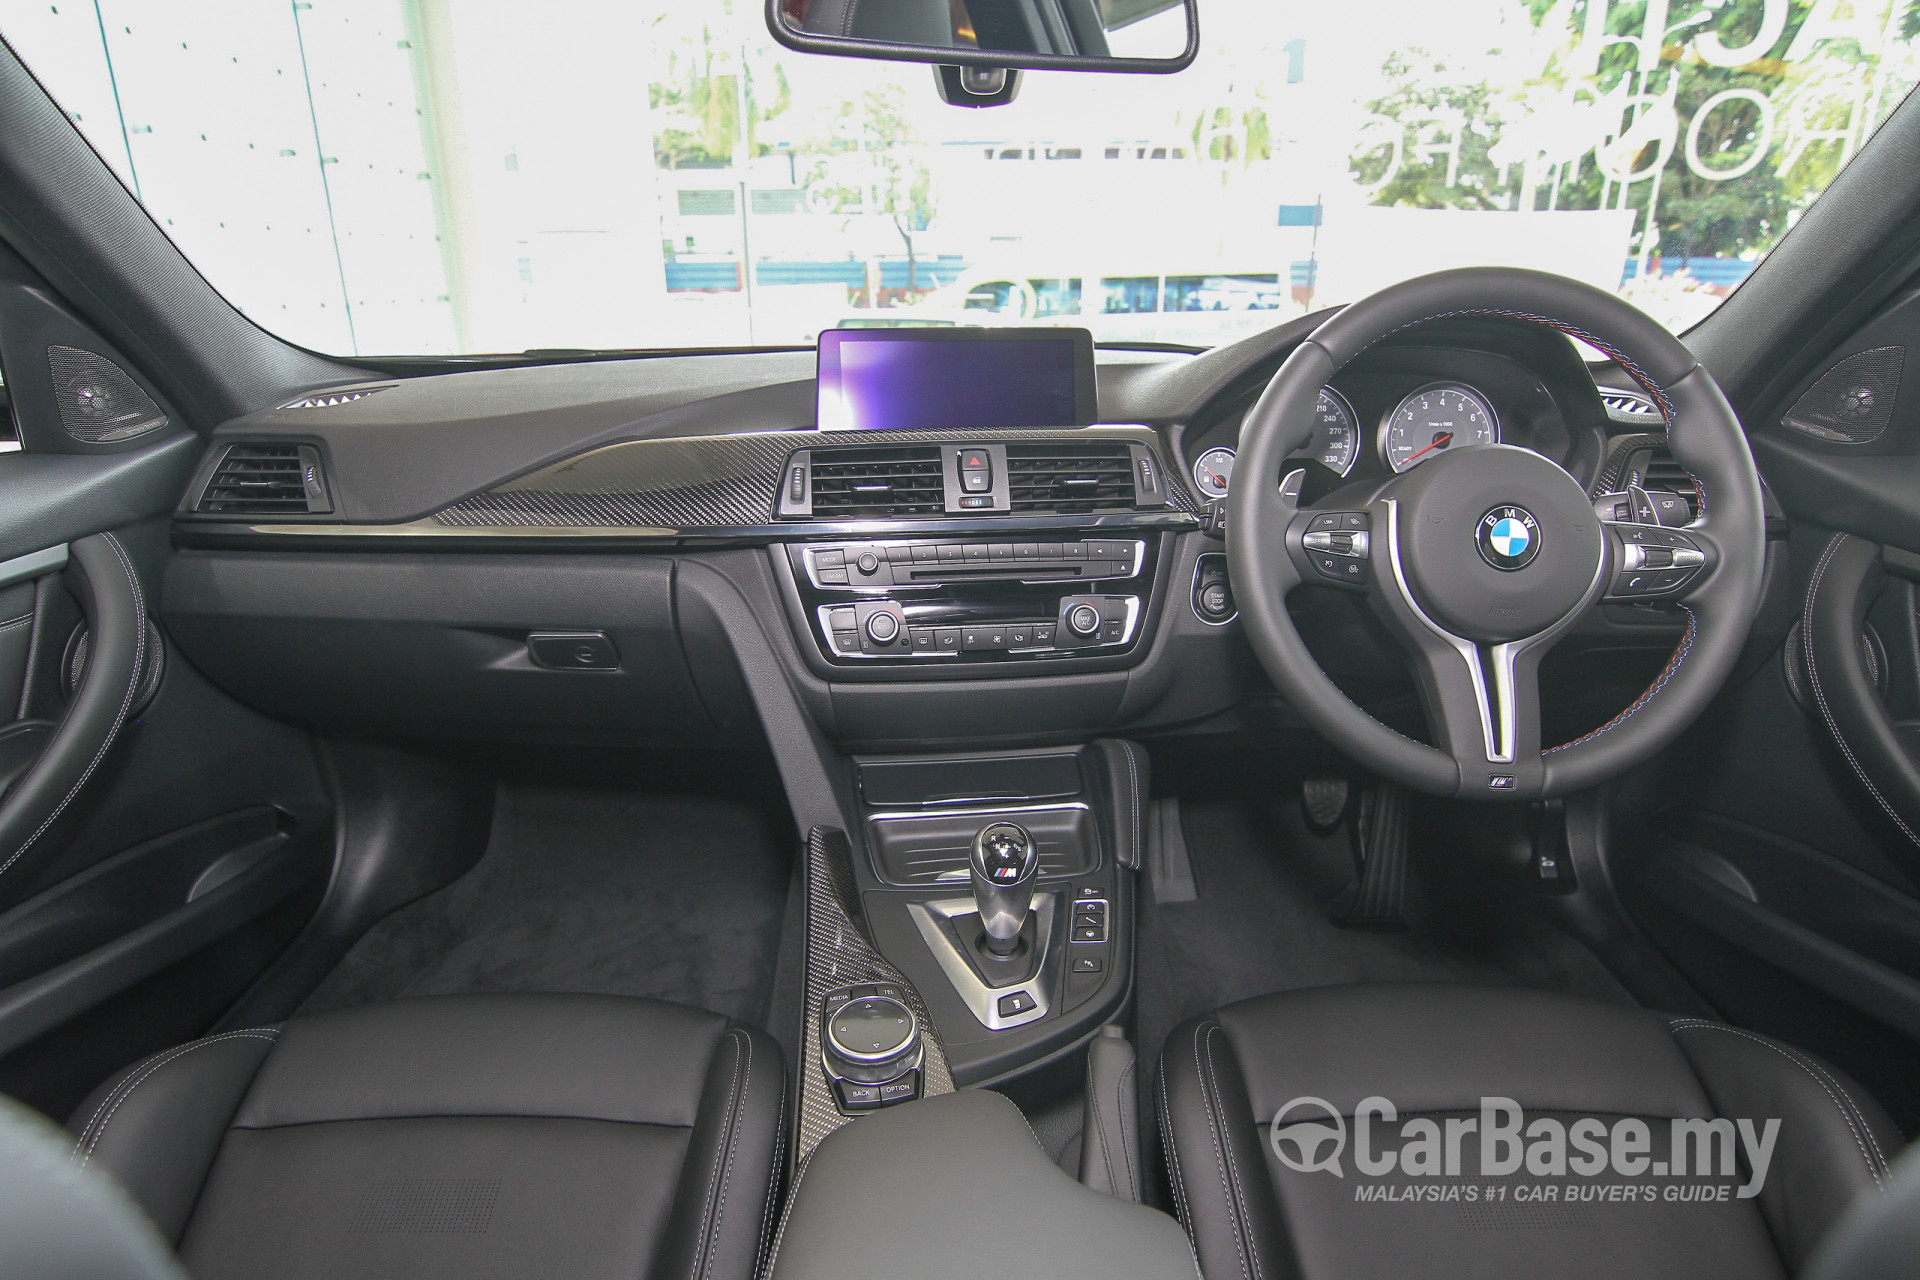 Bmw M3 F80 2014 Interior Image 22382 In Malaysia Reviews Specs